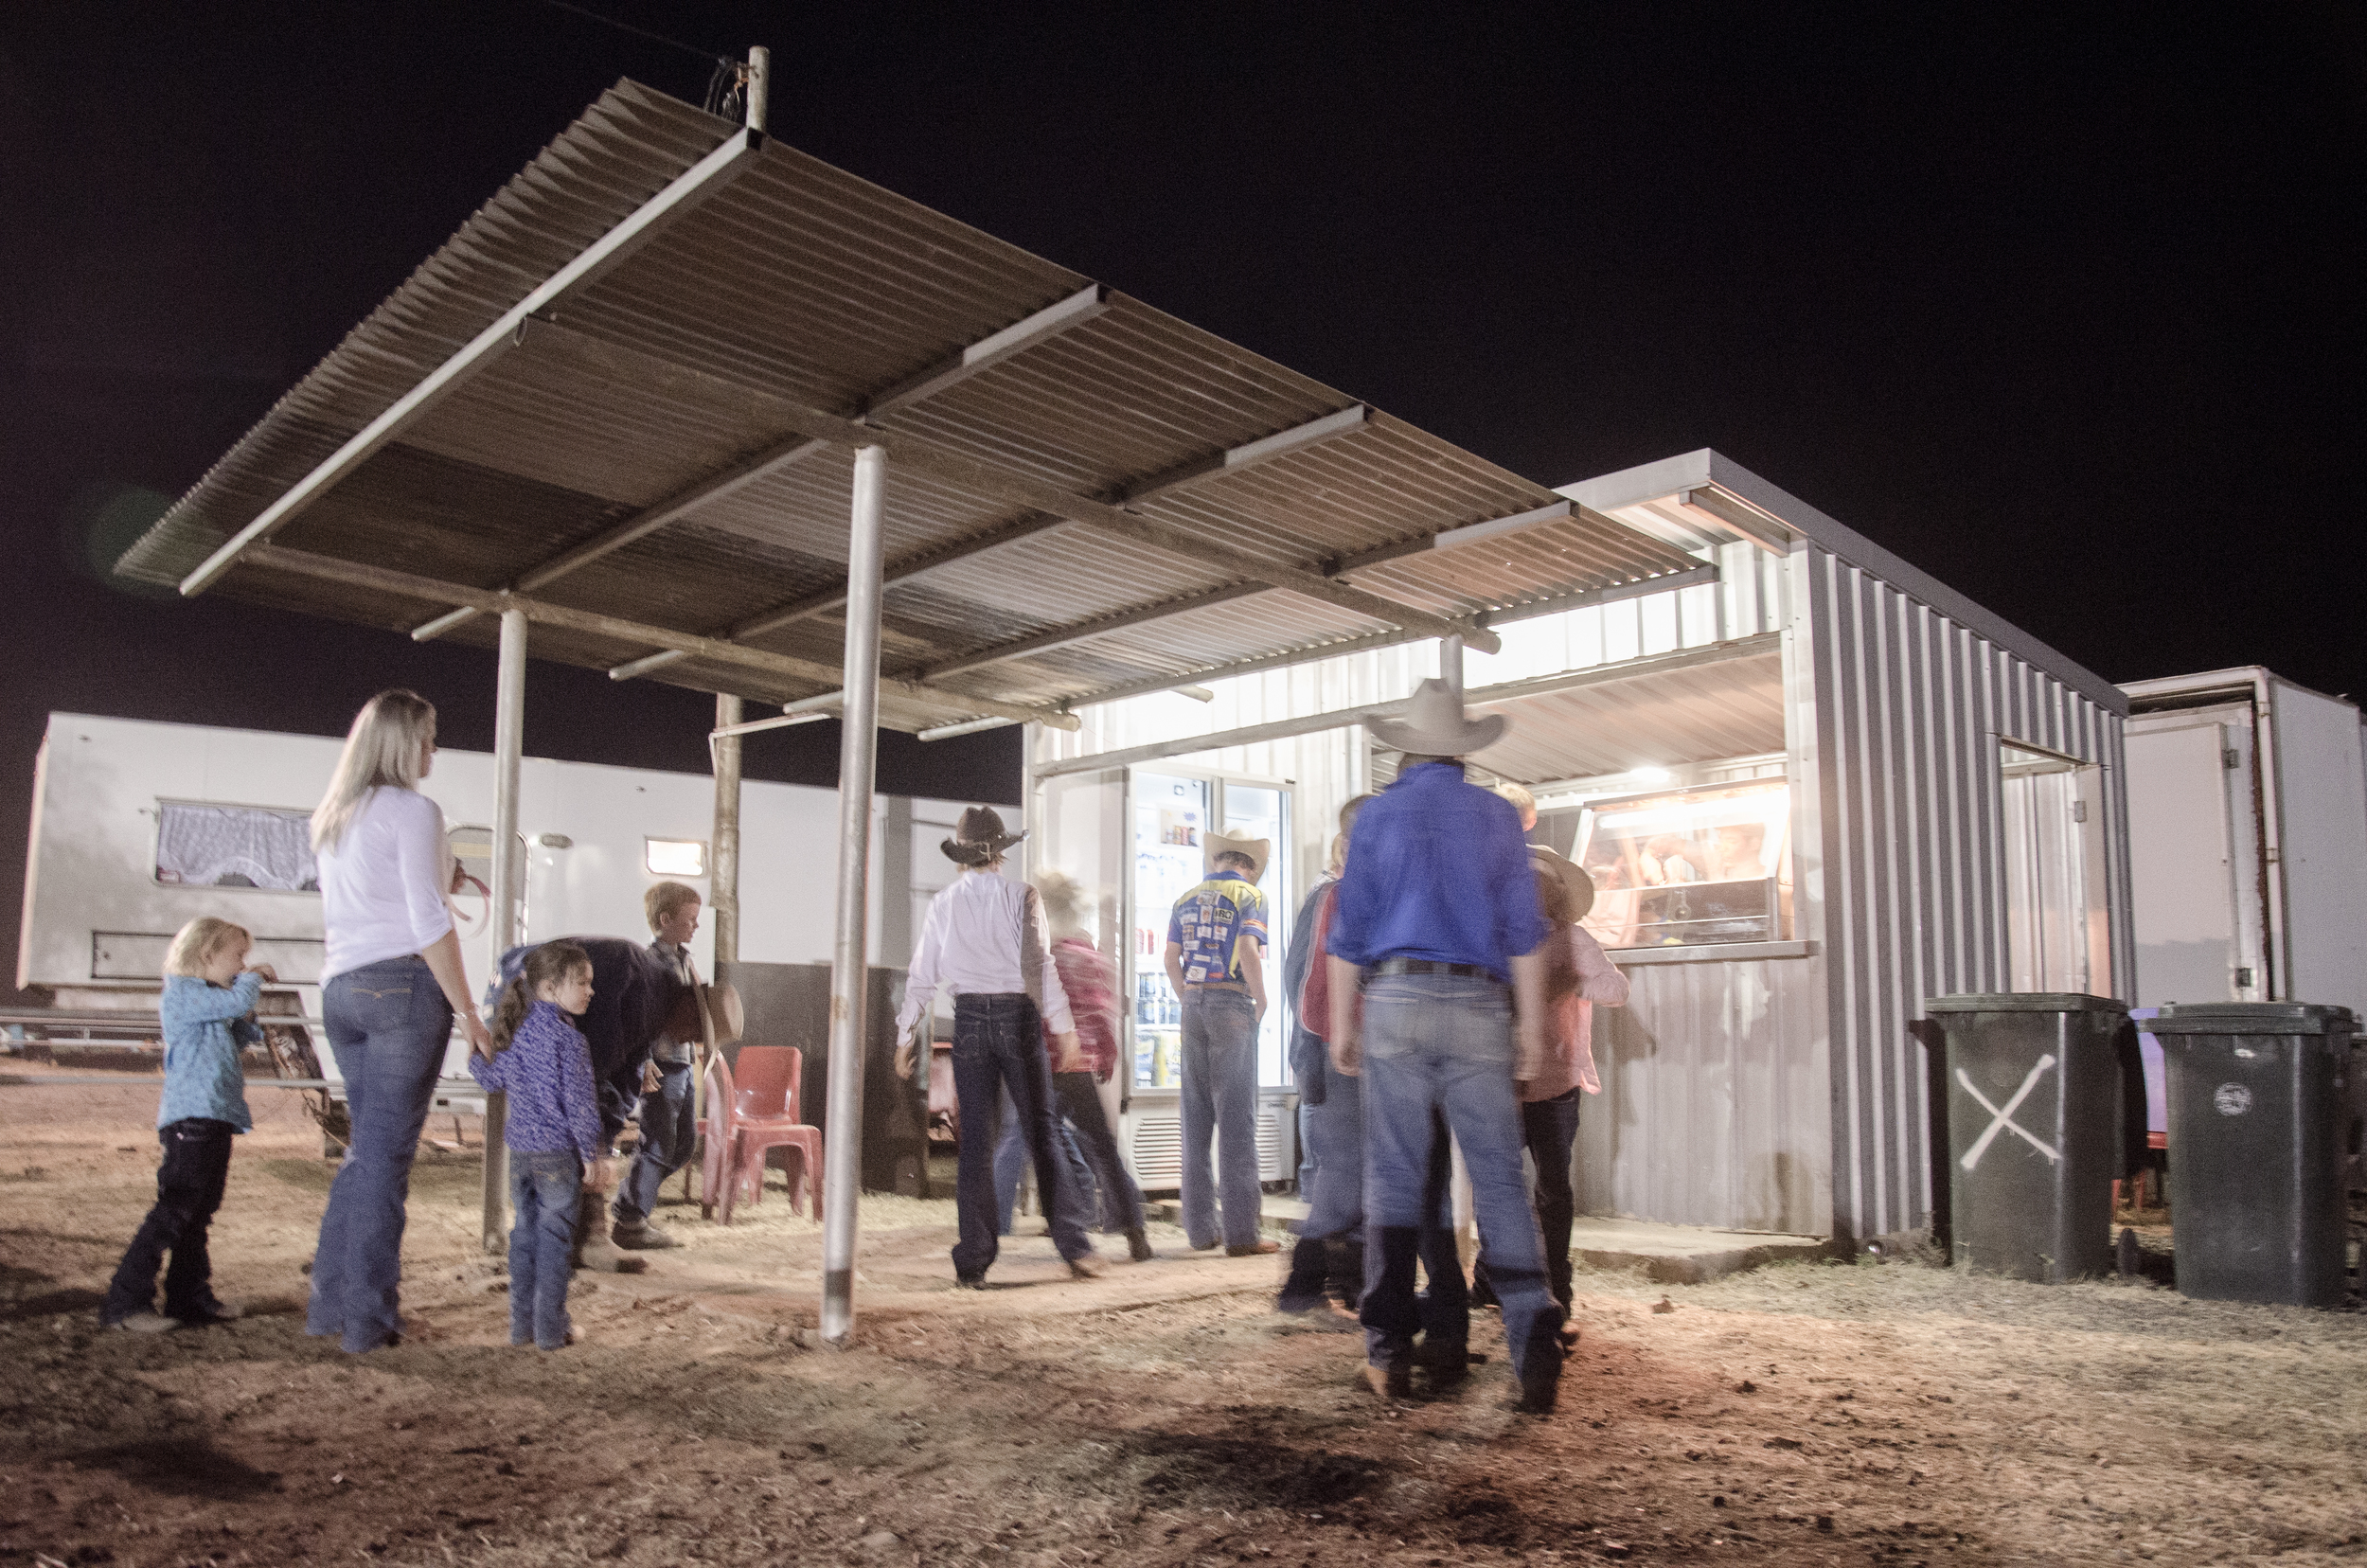 People get in line for a bite to eat before the night campdraft rodeo competition in the Australian heartland.